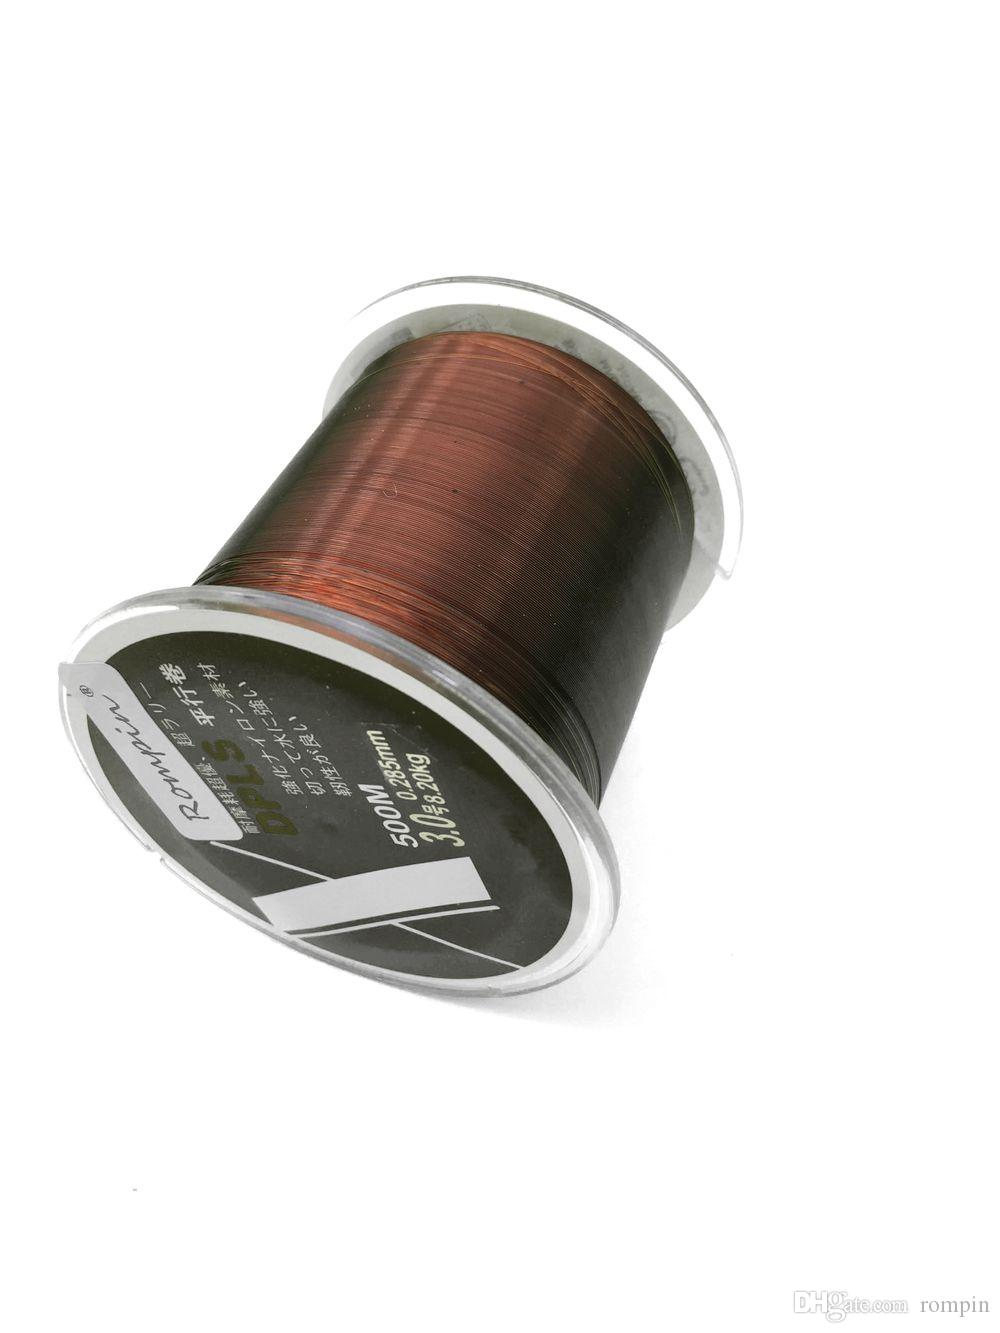 500m fishing line Nylon Fishing Line Japan Imported Raw Material Strong Monofilament Thread for Carp Fishing